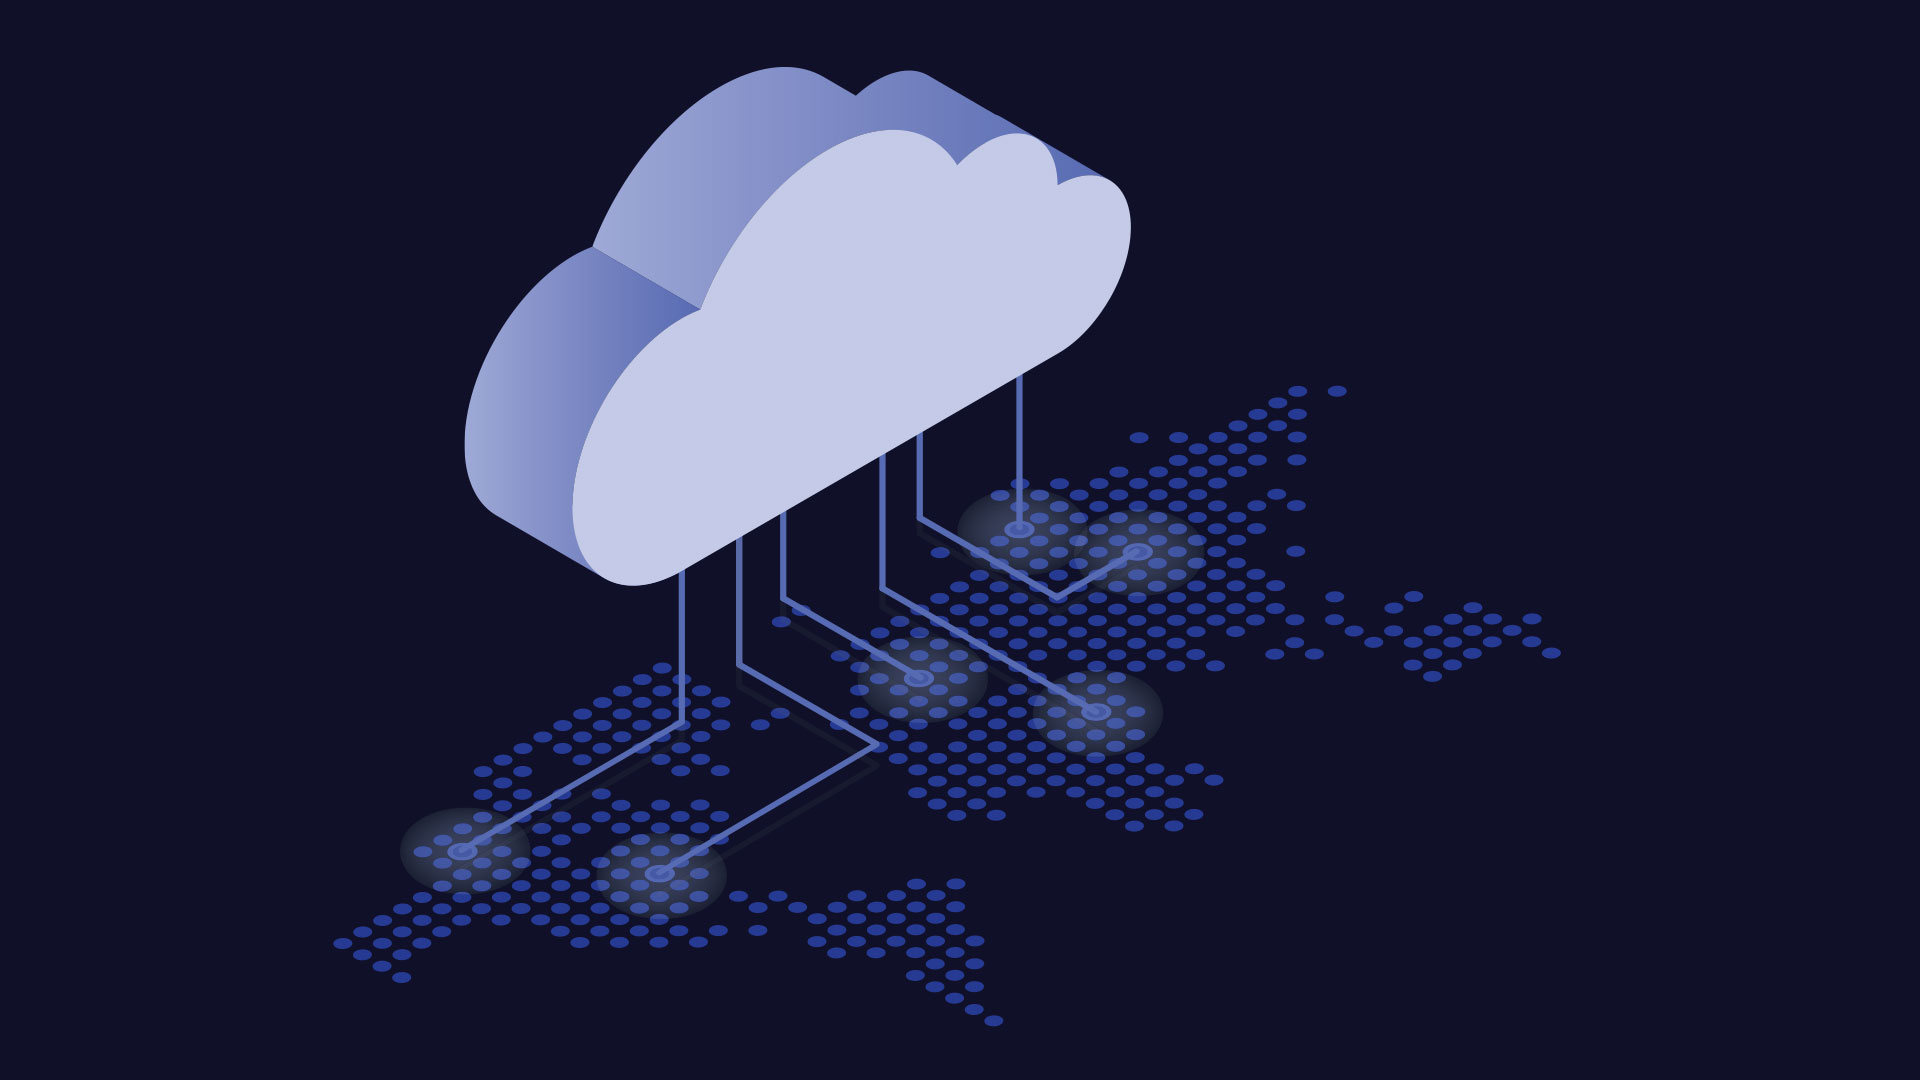 Illustrated white cloud perched on blue technological structure against a black background